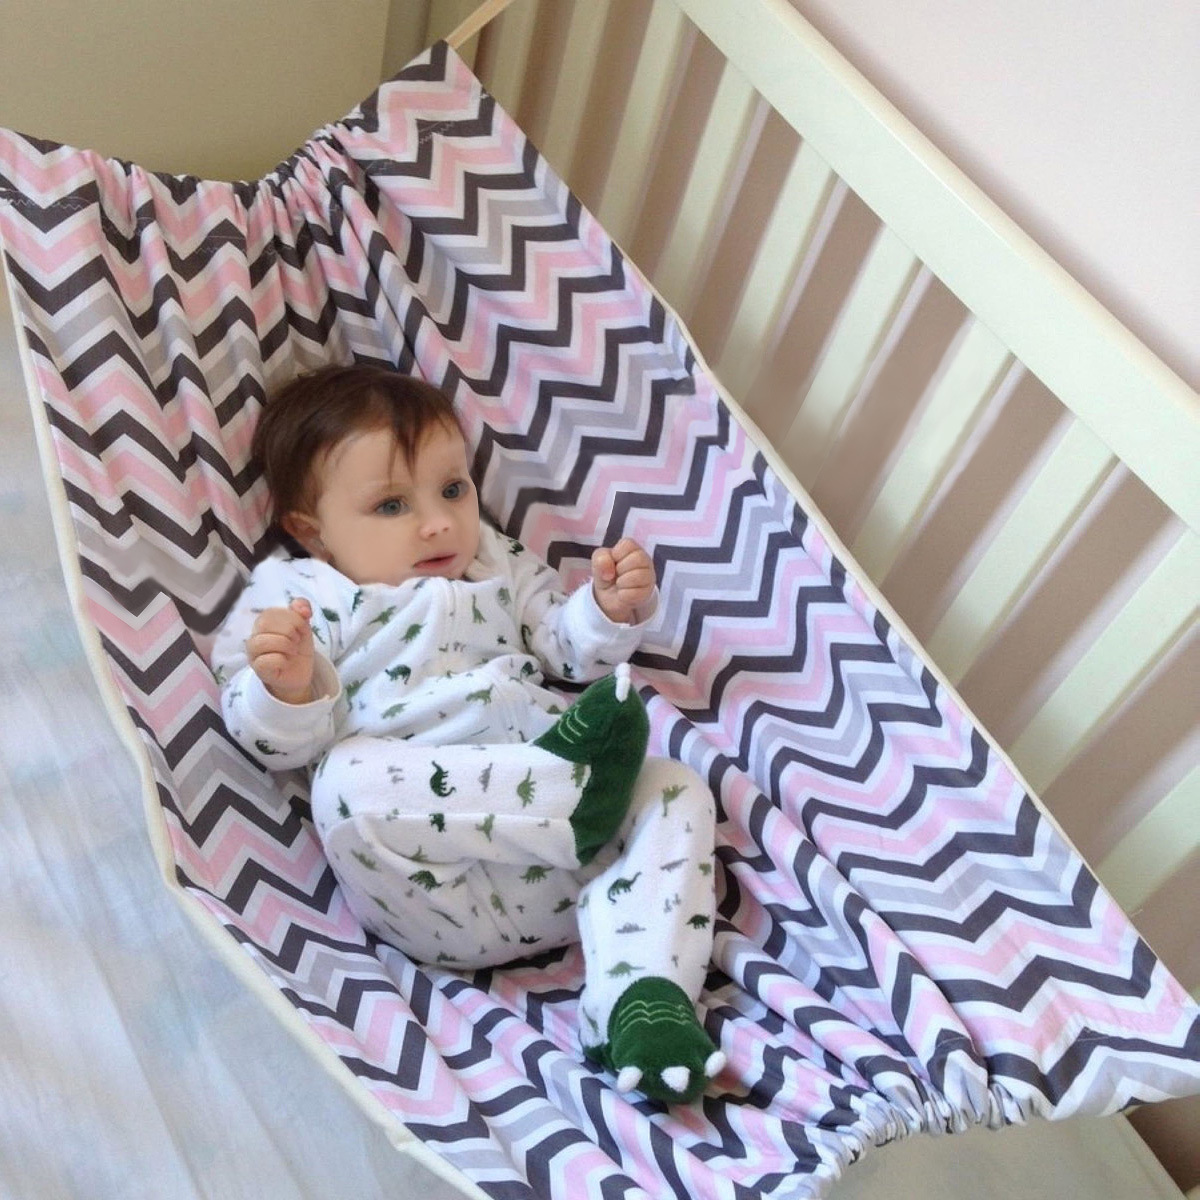 Hot Baby Infant Hammock Baby Crib Detachable Hangmat Clothes Fabric Bebe Boys Girls Sleeping Swing Bed Portable Home Outside